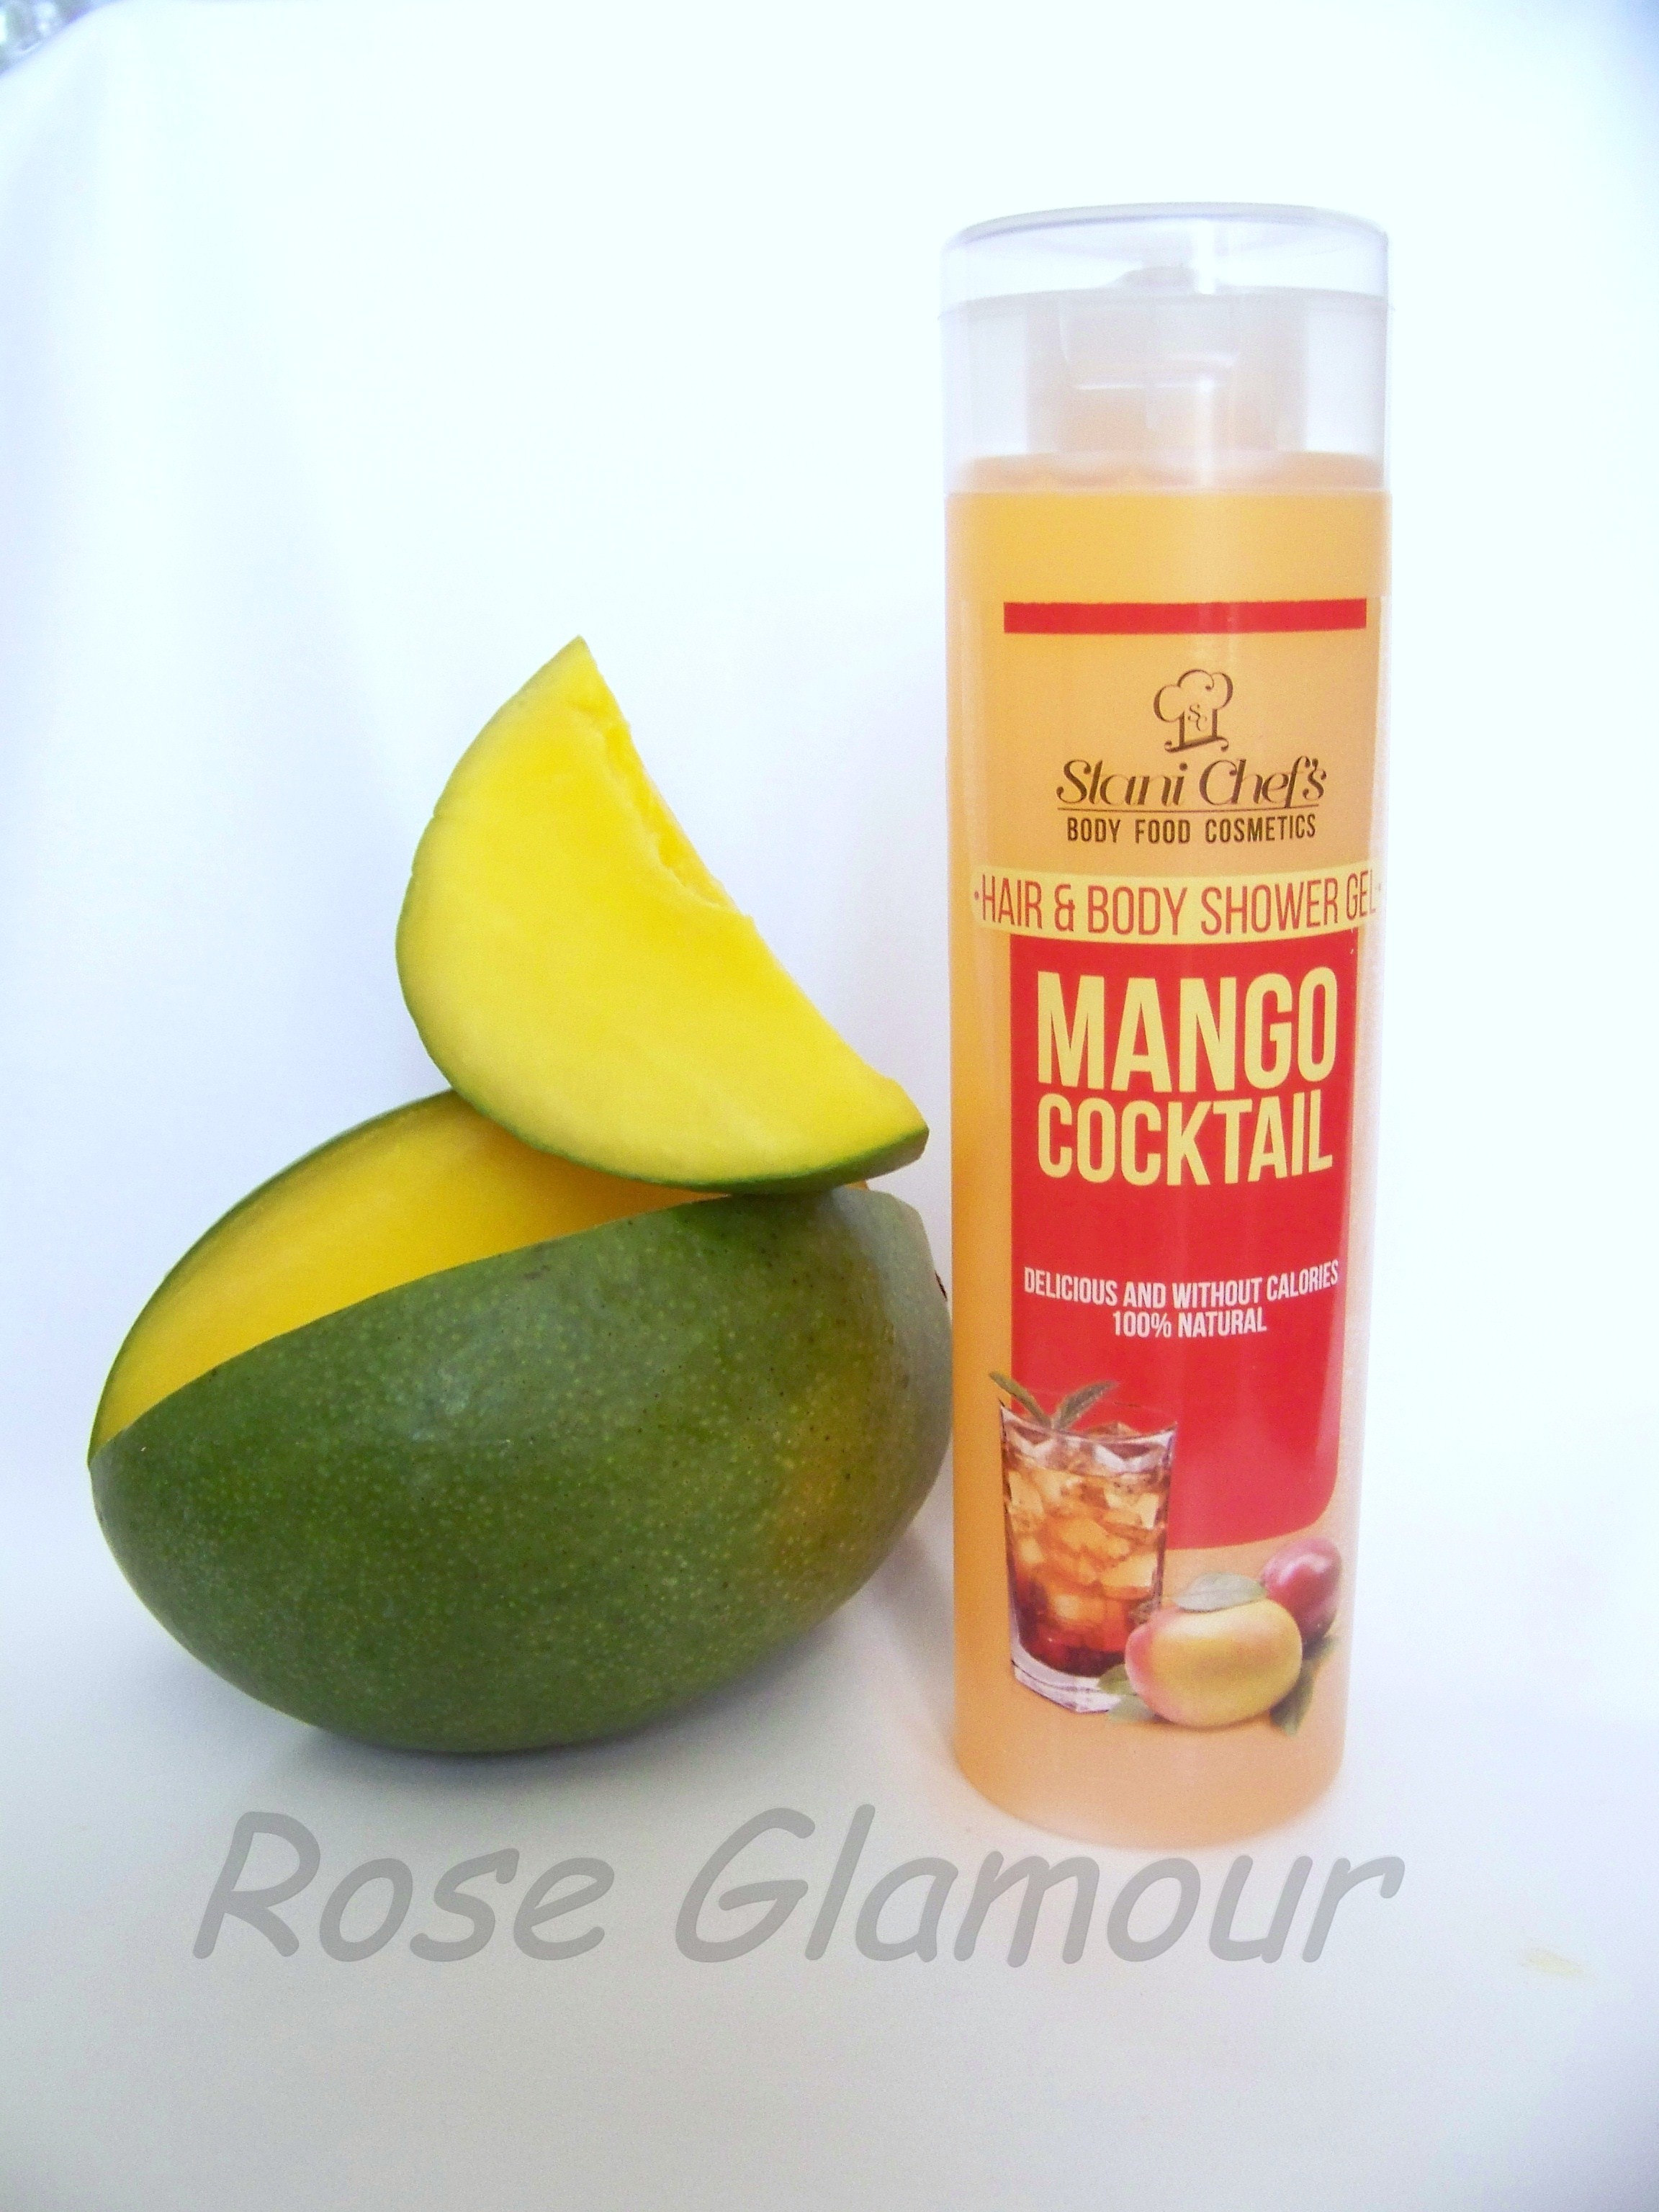 gel douche corps et cheveux aux extraits de mangue 100 naturel 250 ml roseglamour. Black Bedroom Furniture Sets. Home Design Ideas